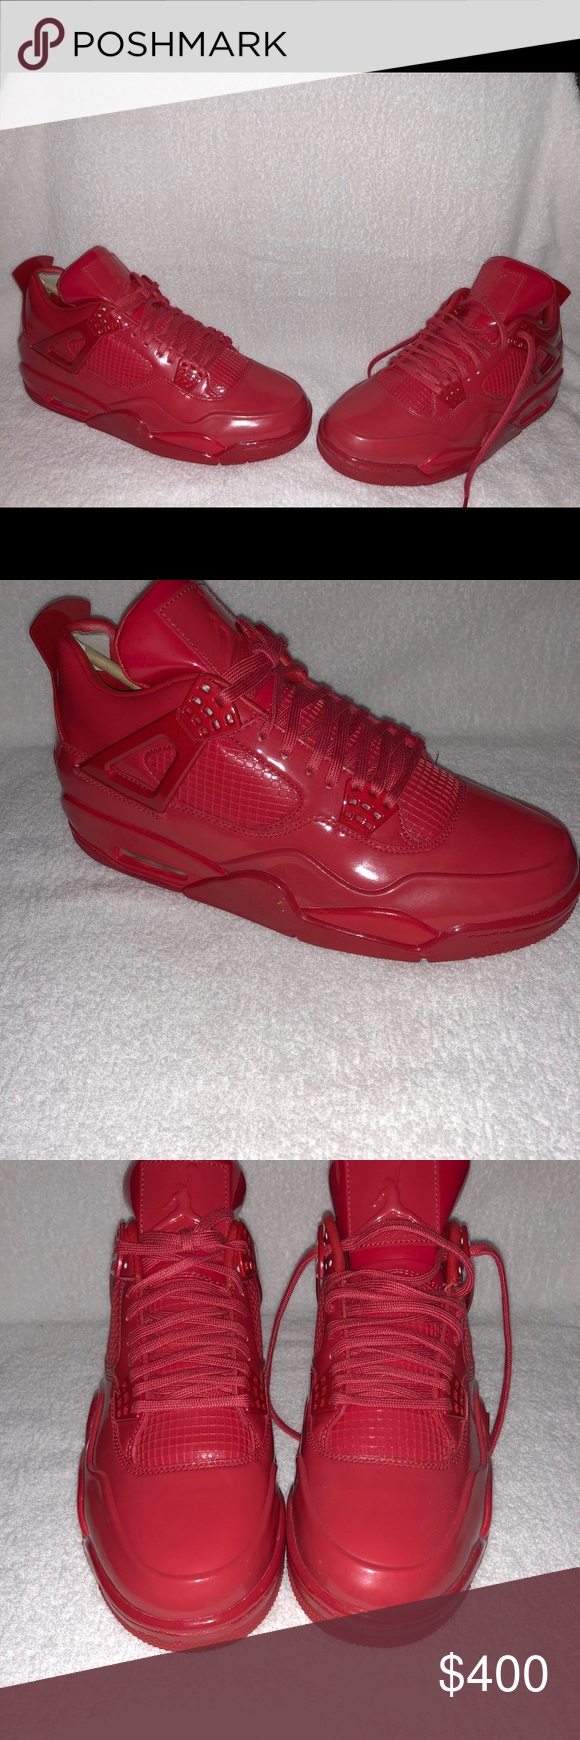 new products b495d 6f94a Jordan retro lab 4. Size 10 new in box Retro 4 Red leather ...